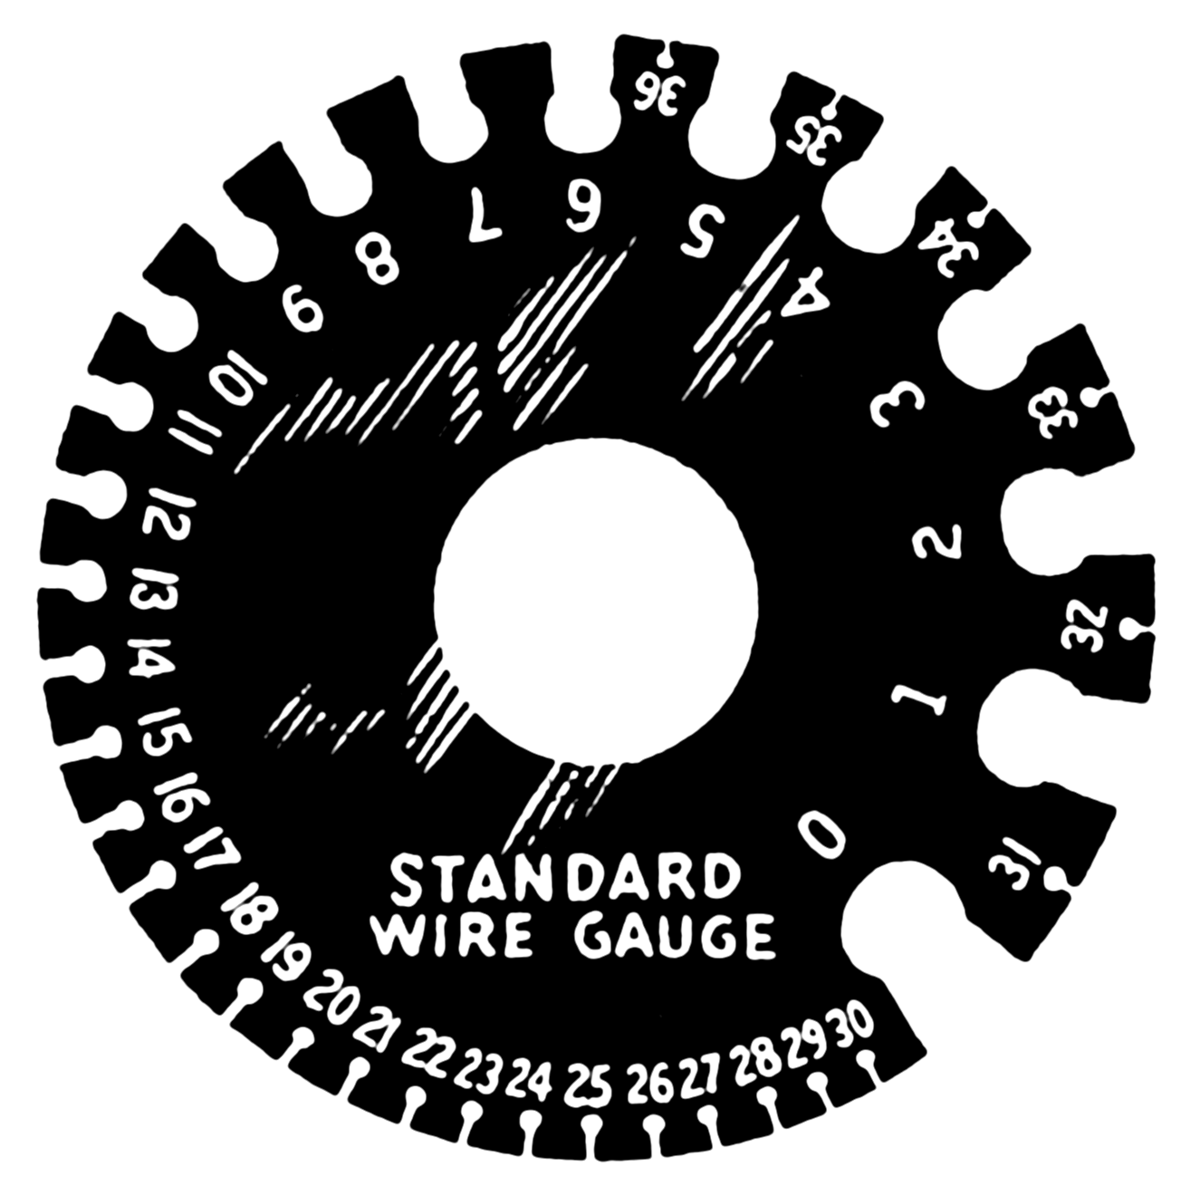 Standard wire gauge - Wikipedia